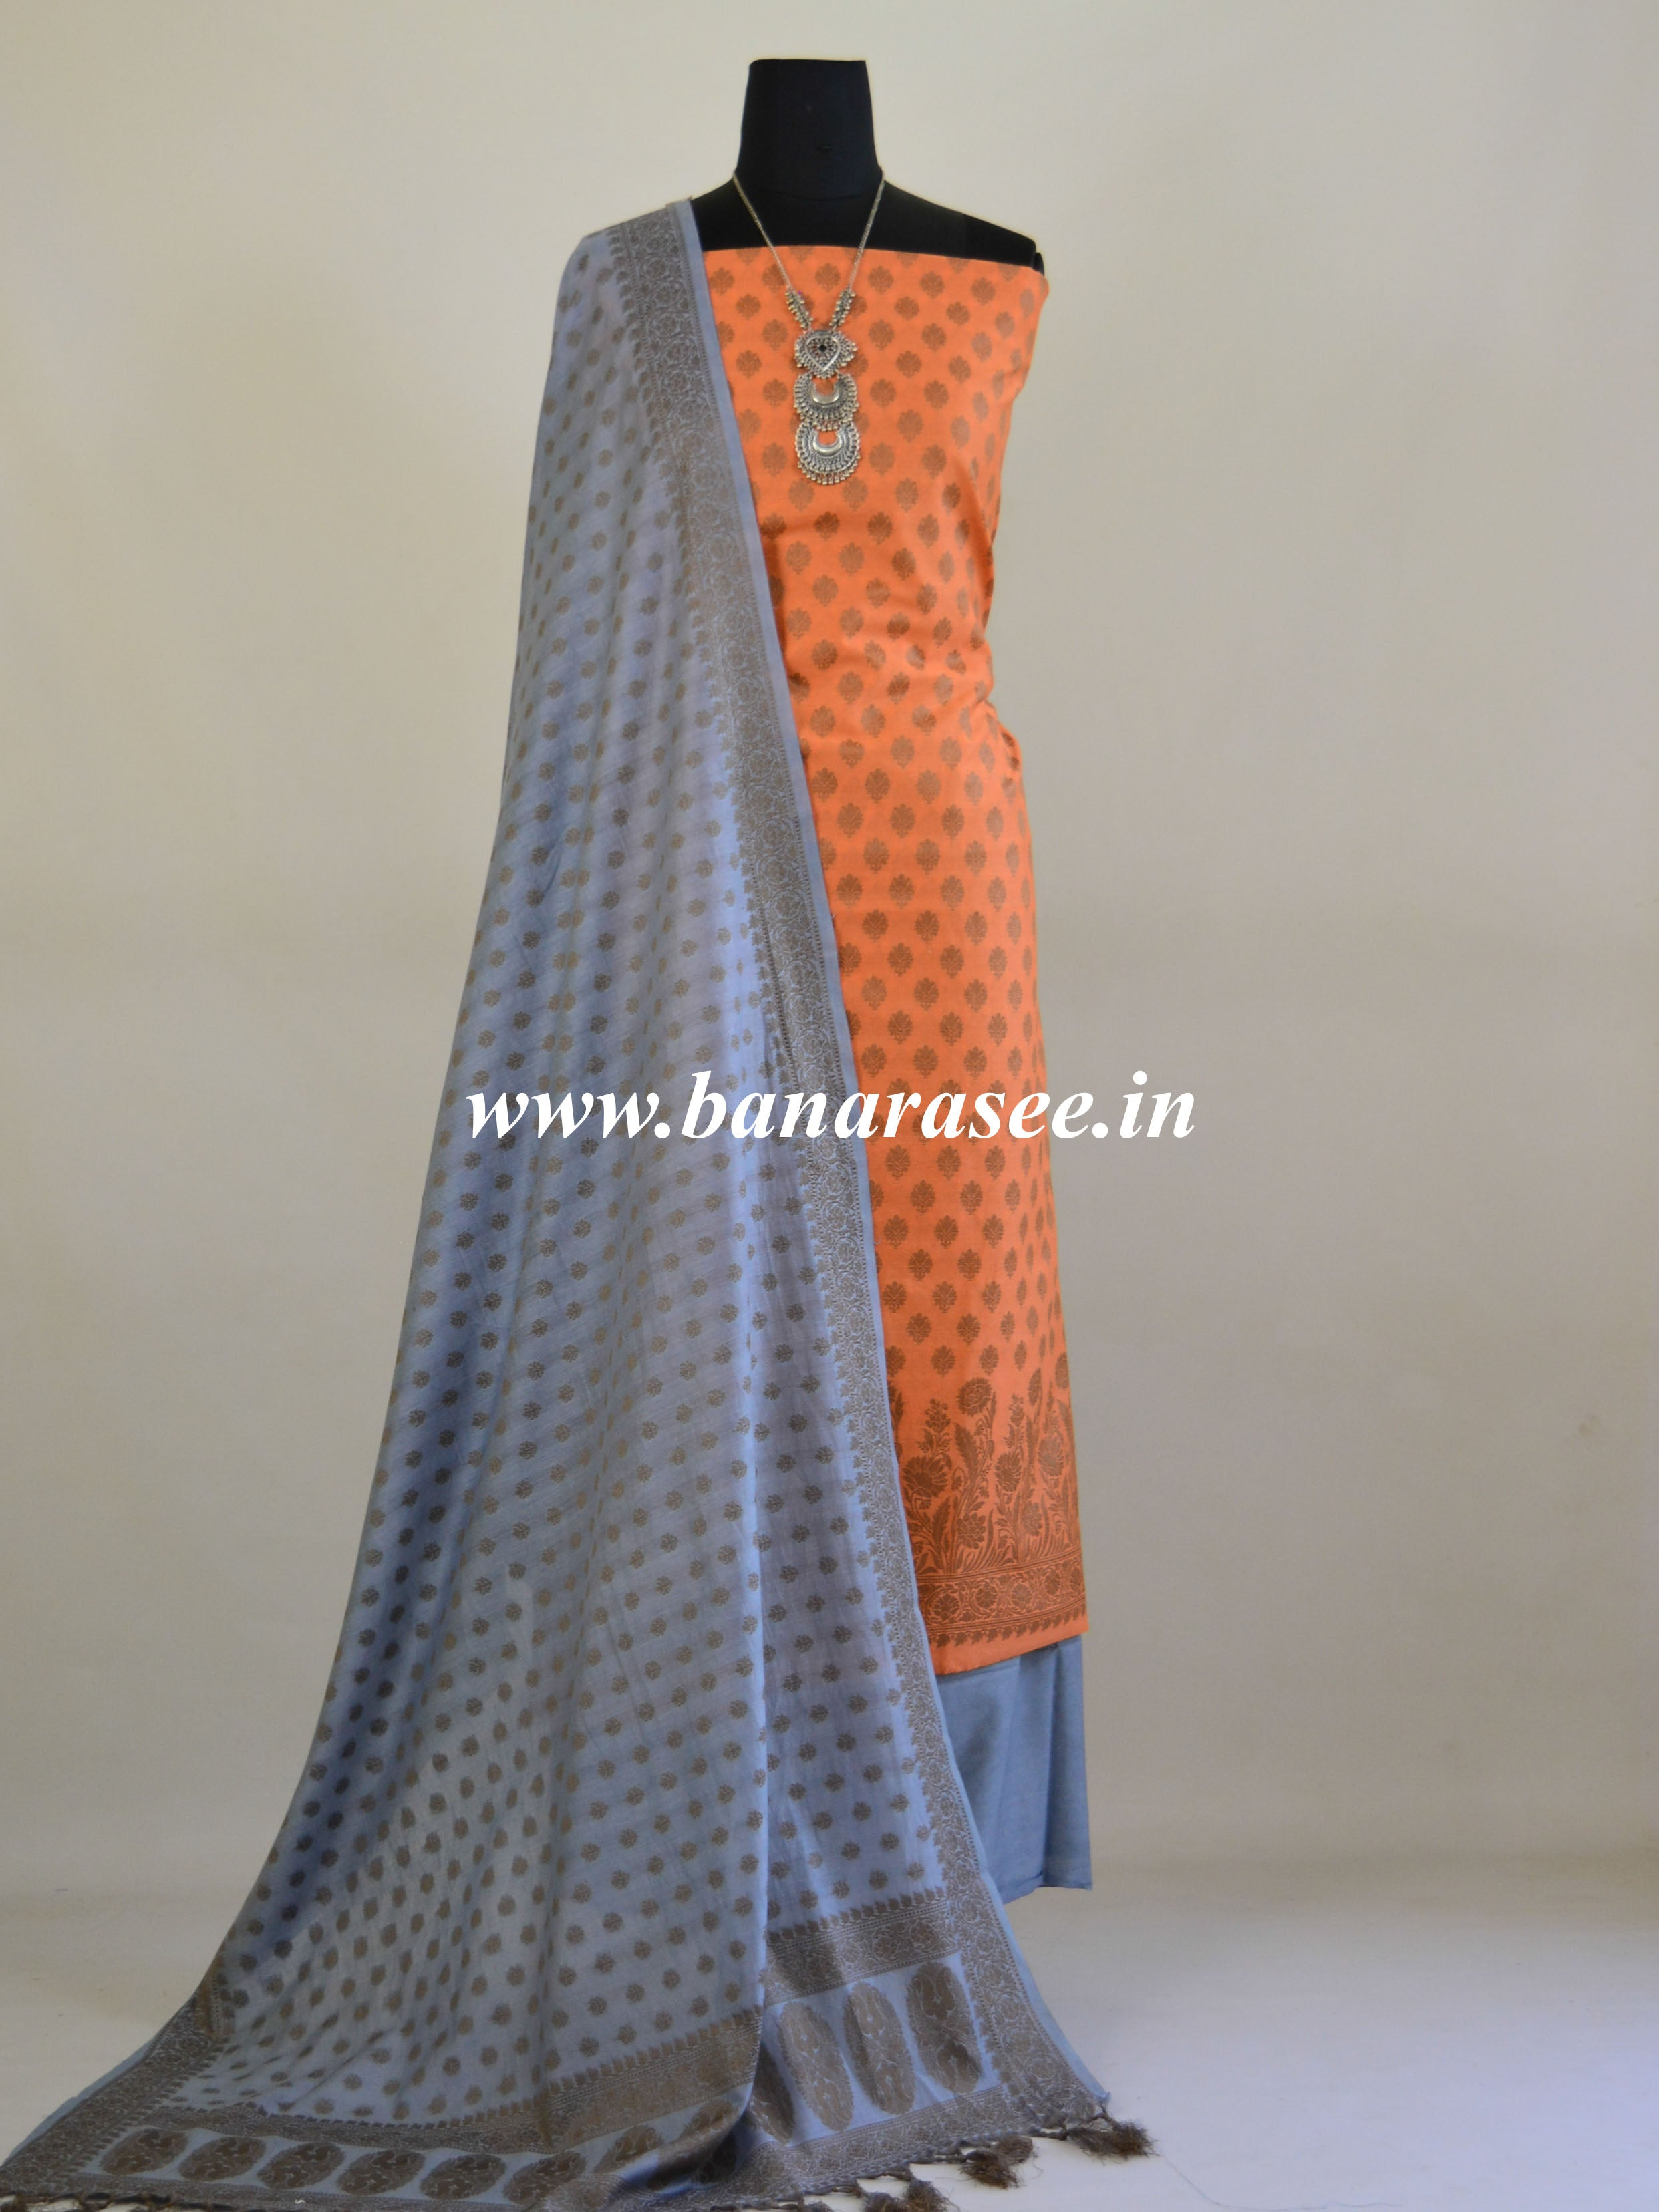 Banarasee Cotton Mix Ghichha Work Salwar Kameez With Grey Dupatta-Peach